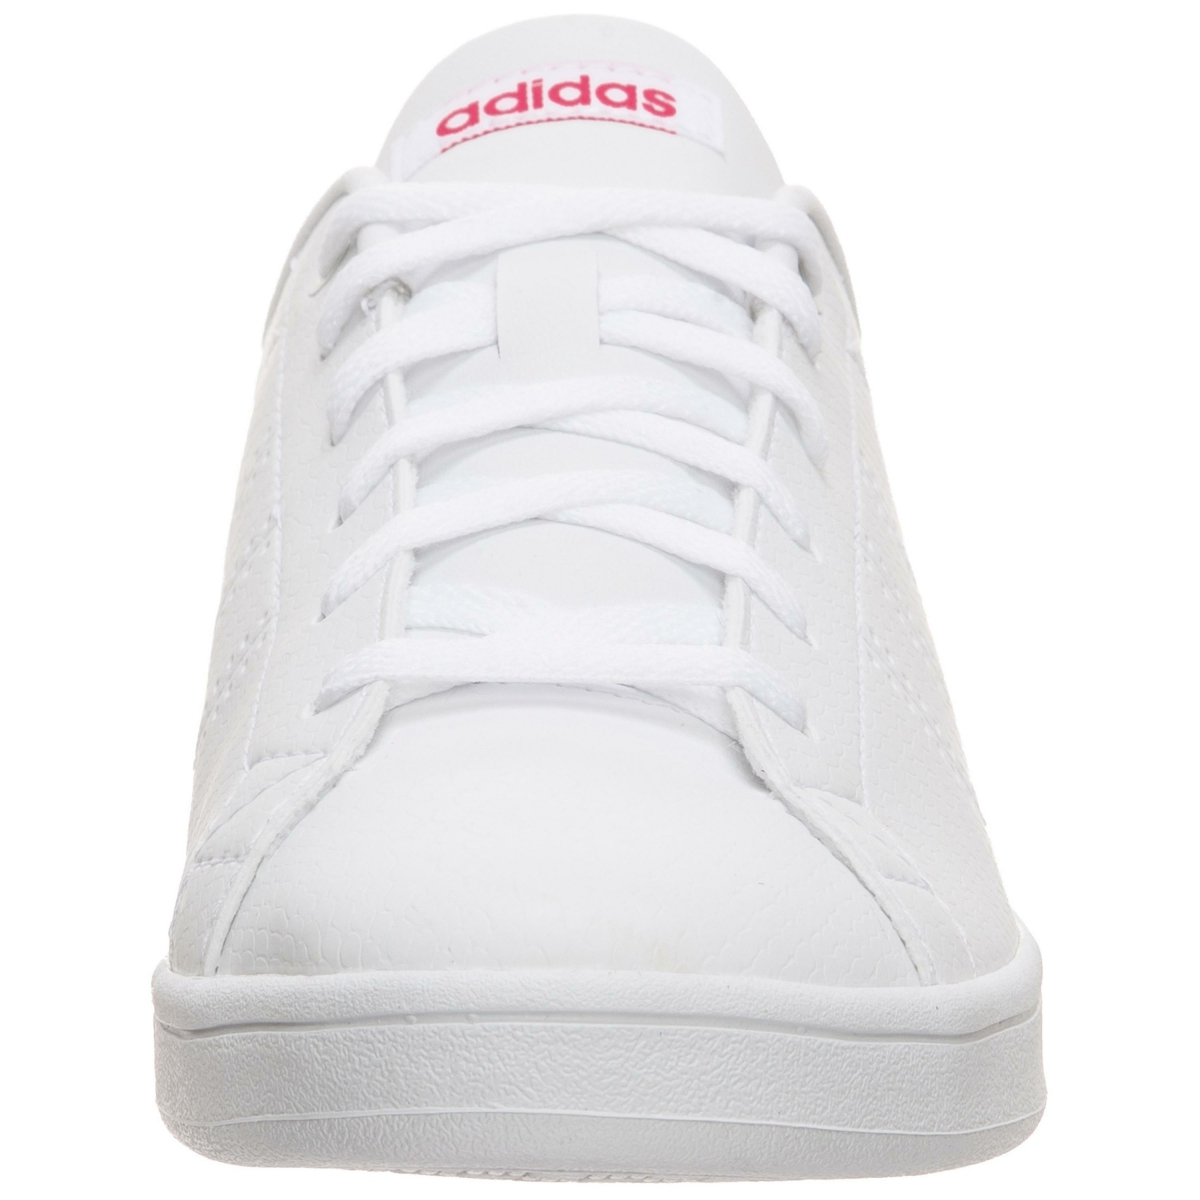 adidas Originals Advantage Clean QT in weiss F34710 | everysize